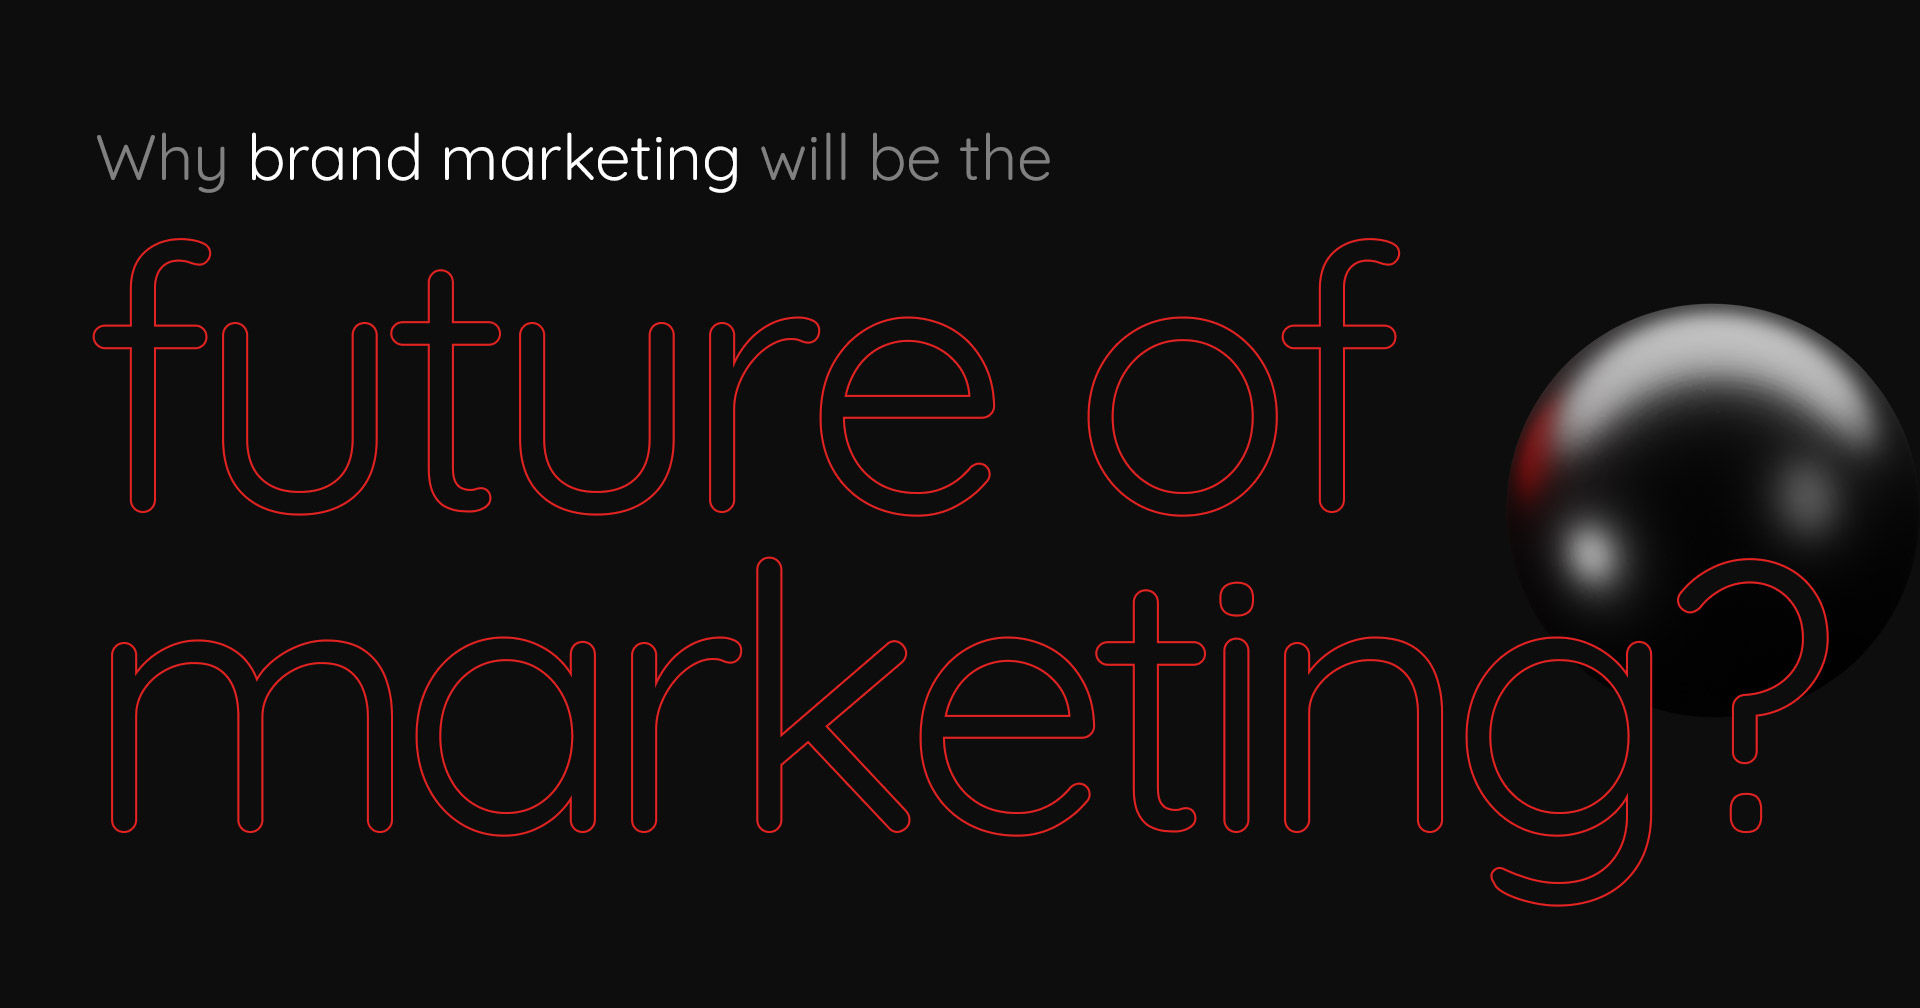 Why brand marketing will be the future of marketing?